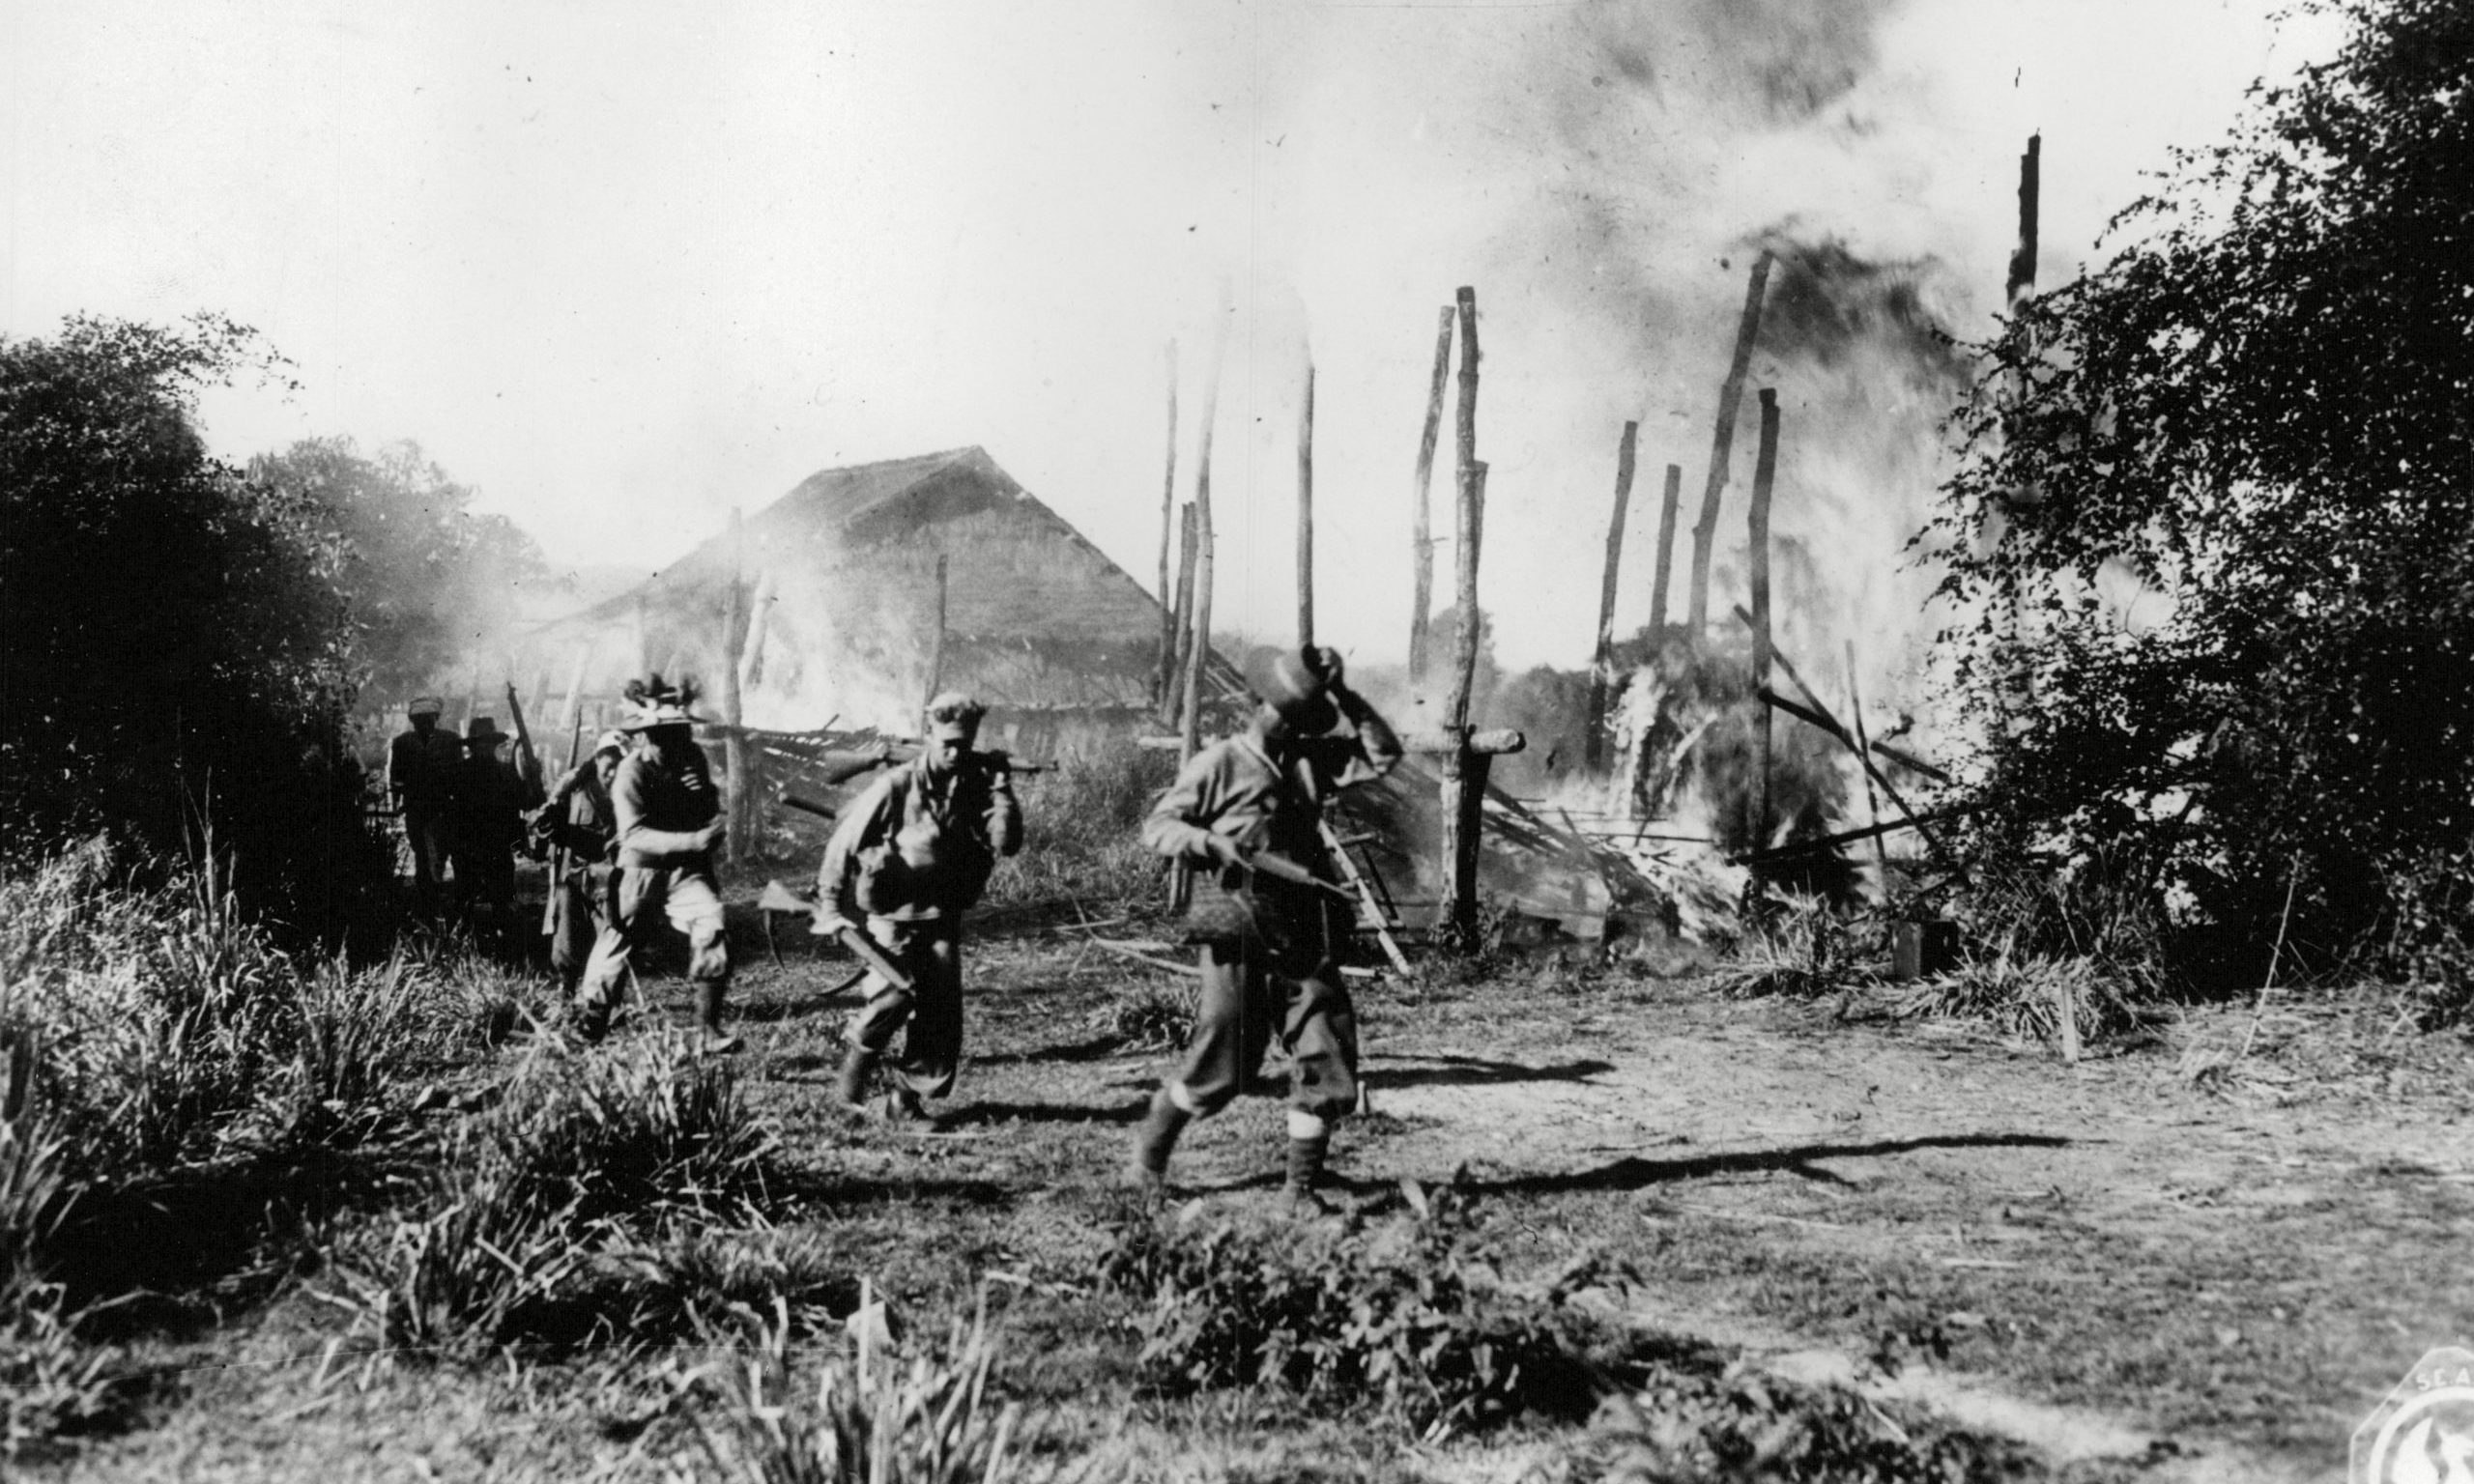 The fighting in Burma was brutal with all British servicemen severely challenged by the atrocious weather conditions in the malaria-ridden jungle.